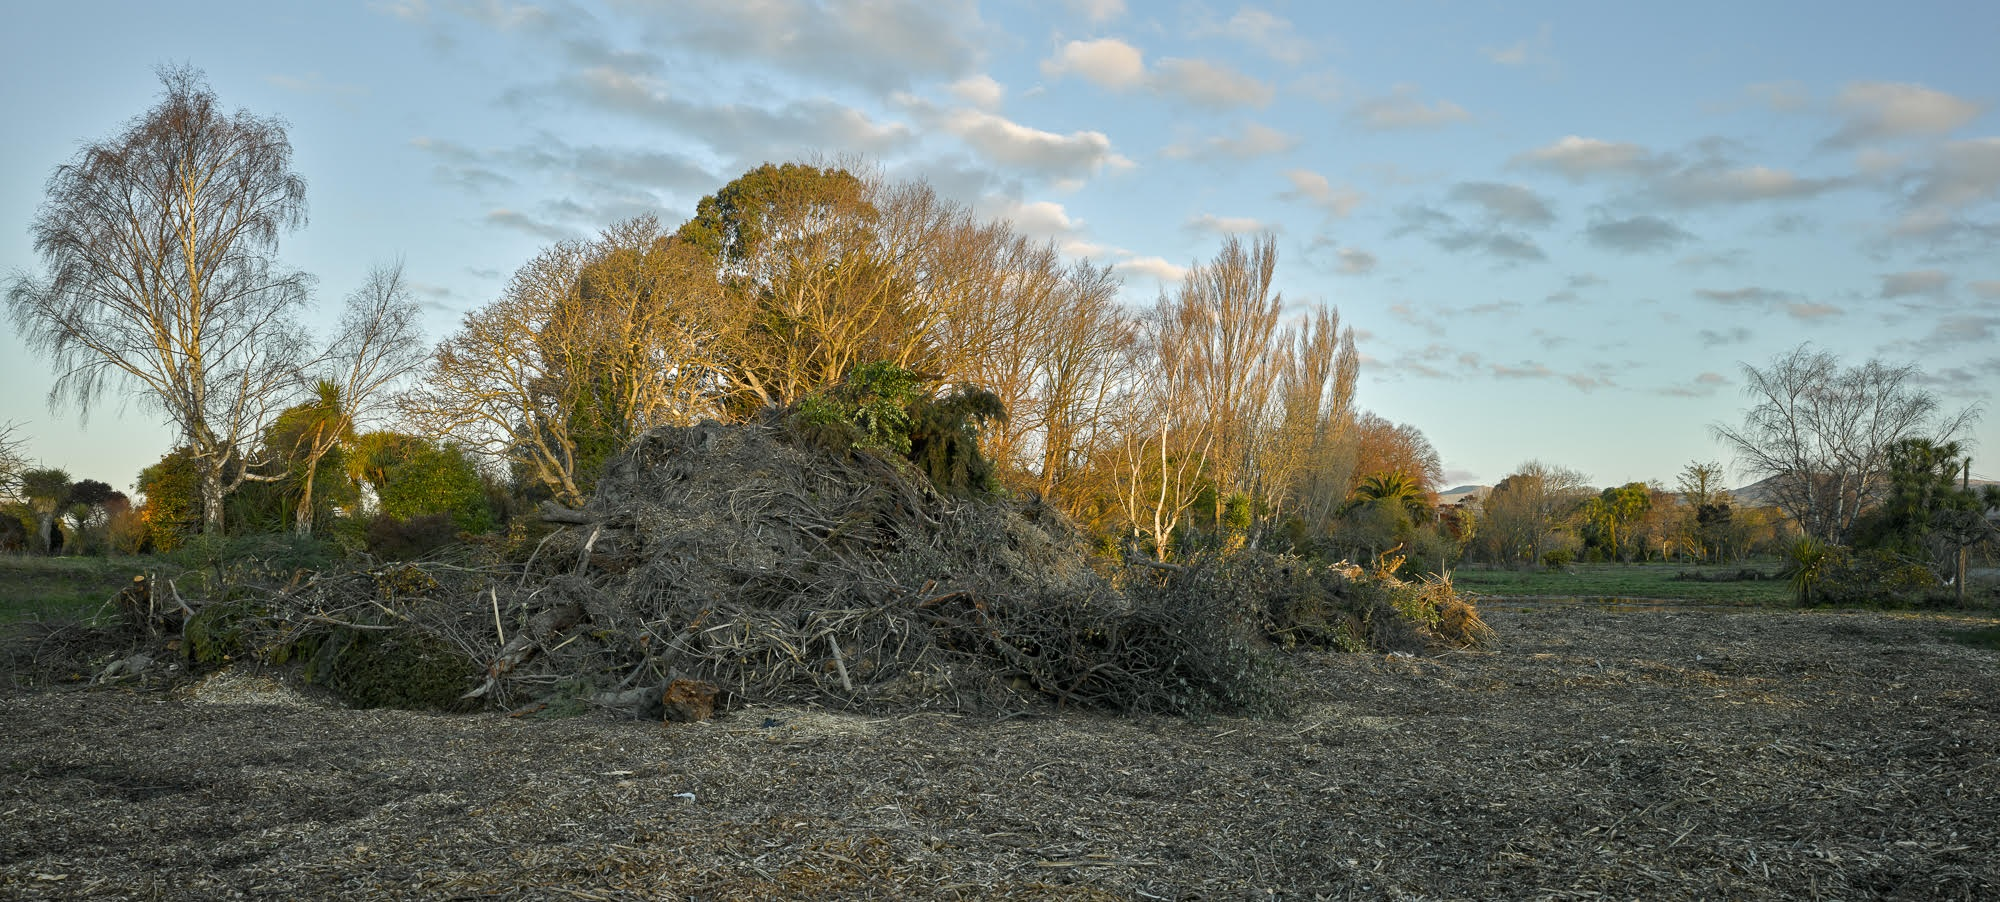 Keller St, Avonside, 2015. Non-indigenous plants and domestic greenery cleared from residential red zone land.